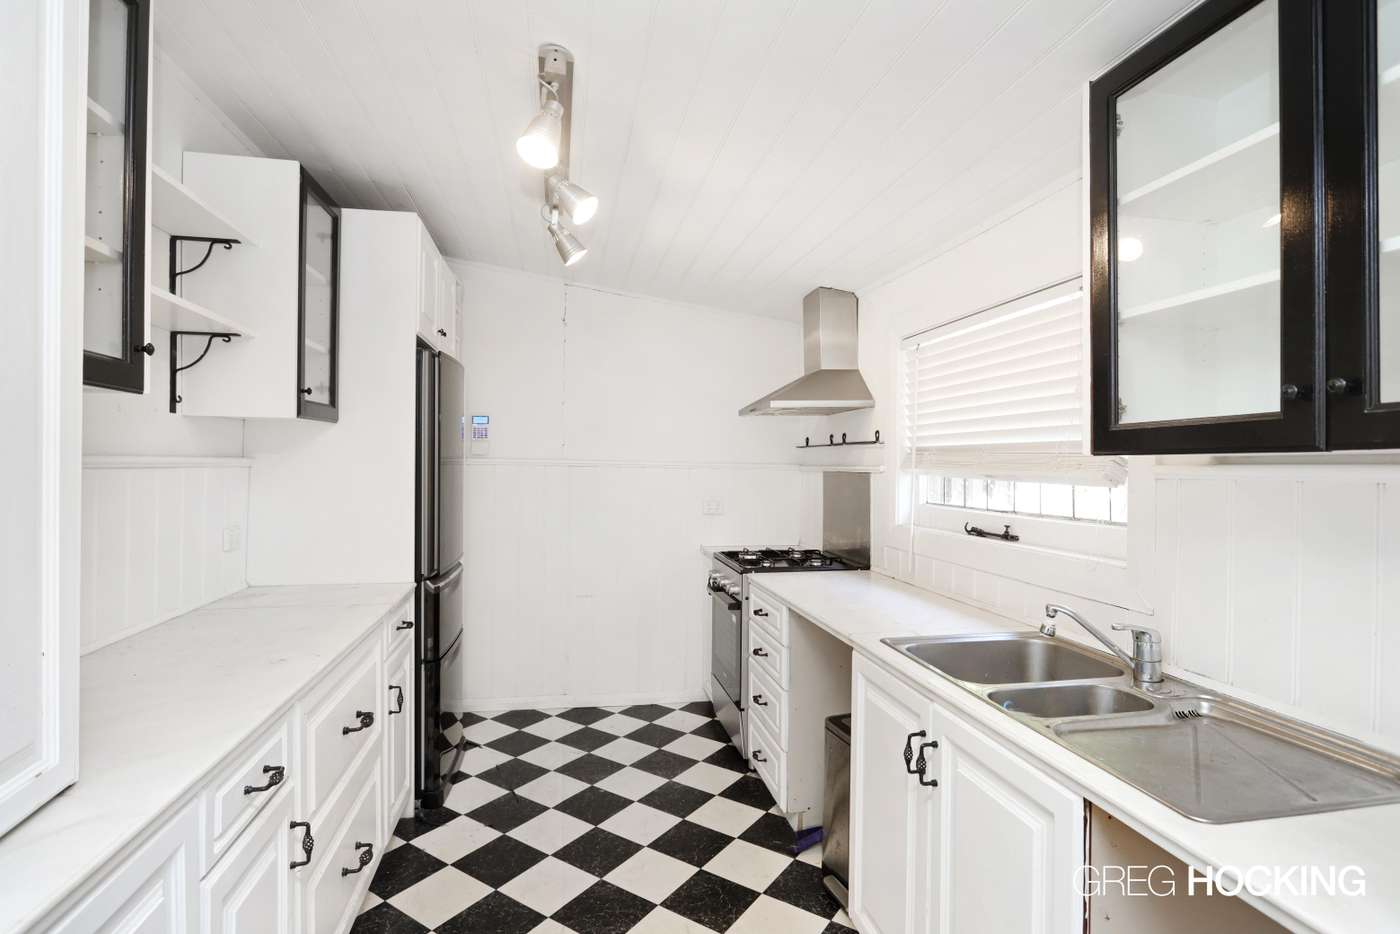 Main view of Homely house listing, 88 Eleanor Street, Footscray VIC 3011